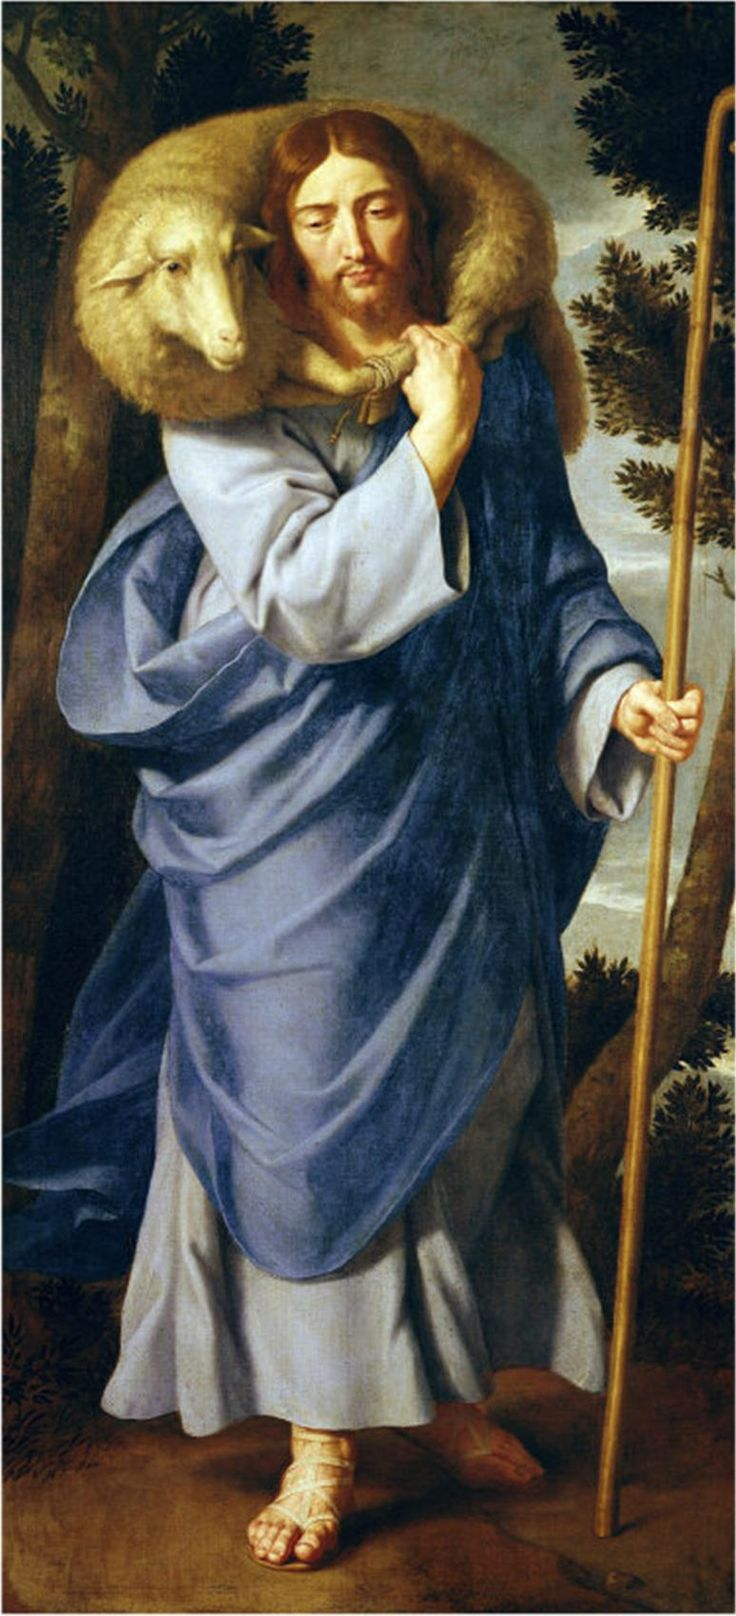 Depiction of the Good Shepherd by Jean-Baptiste de Champaigne showing the influence of this parable.